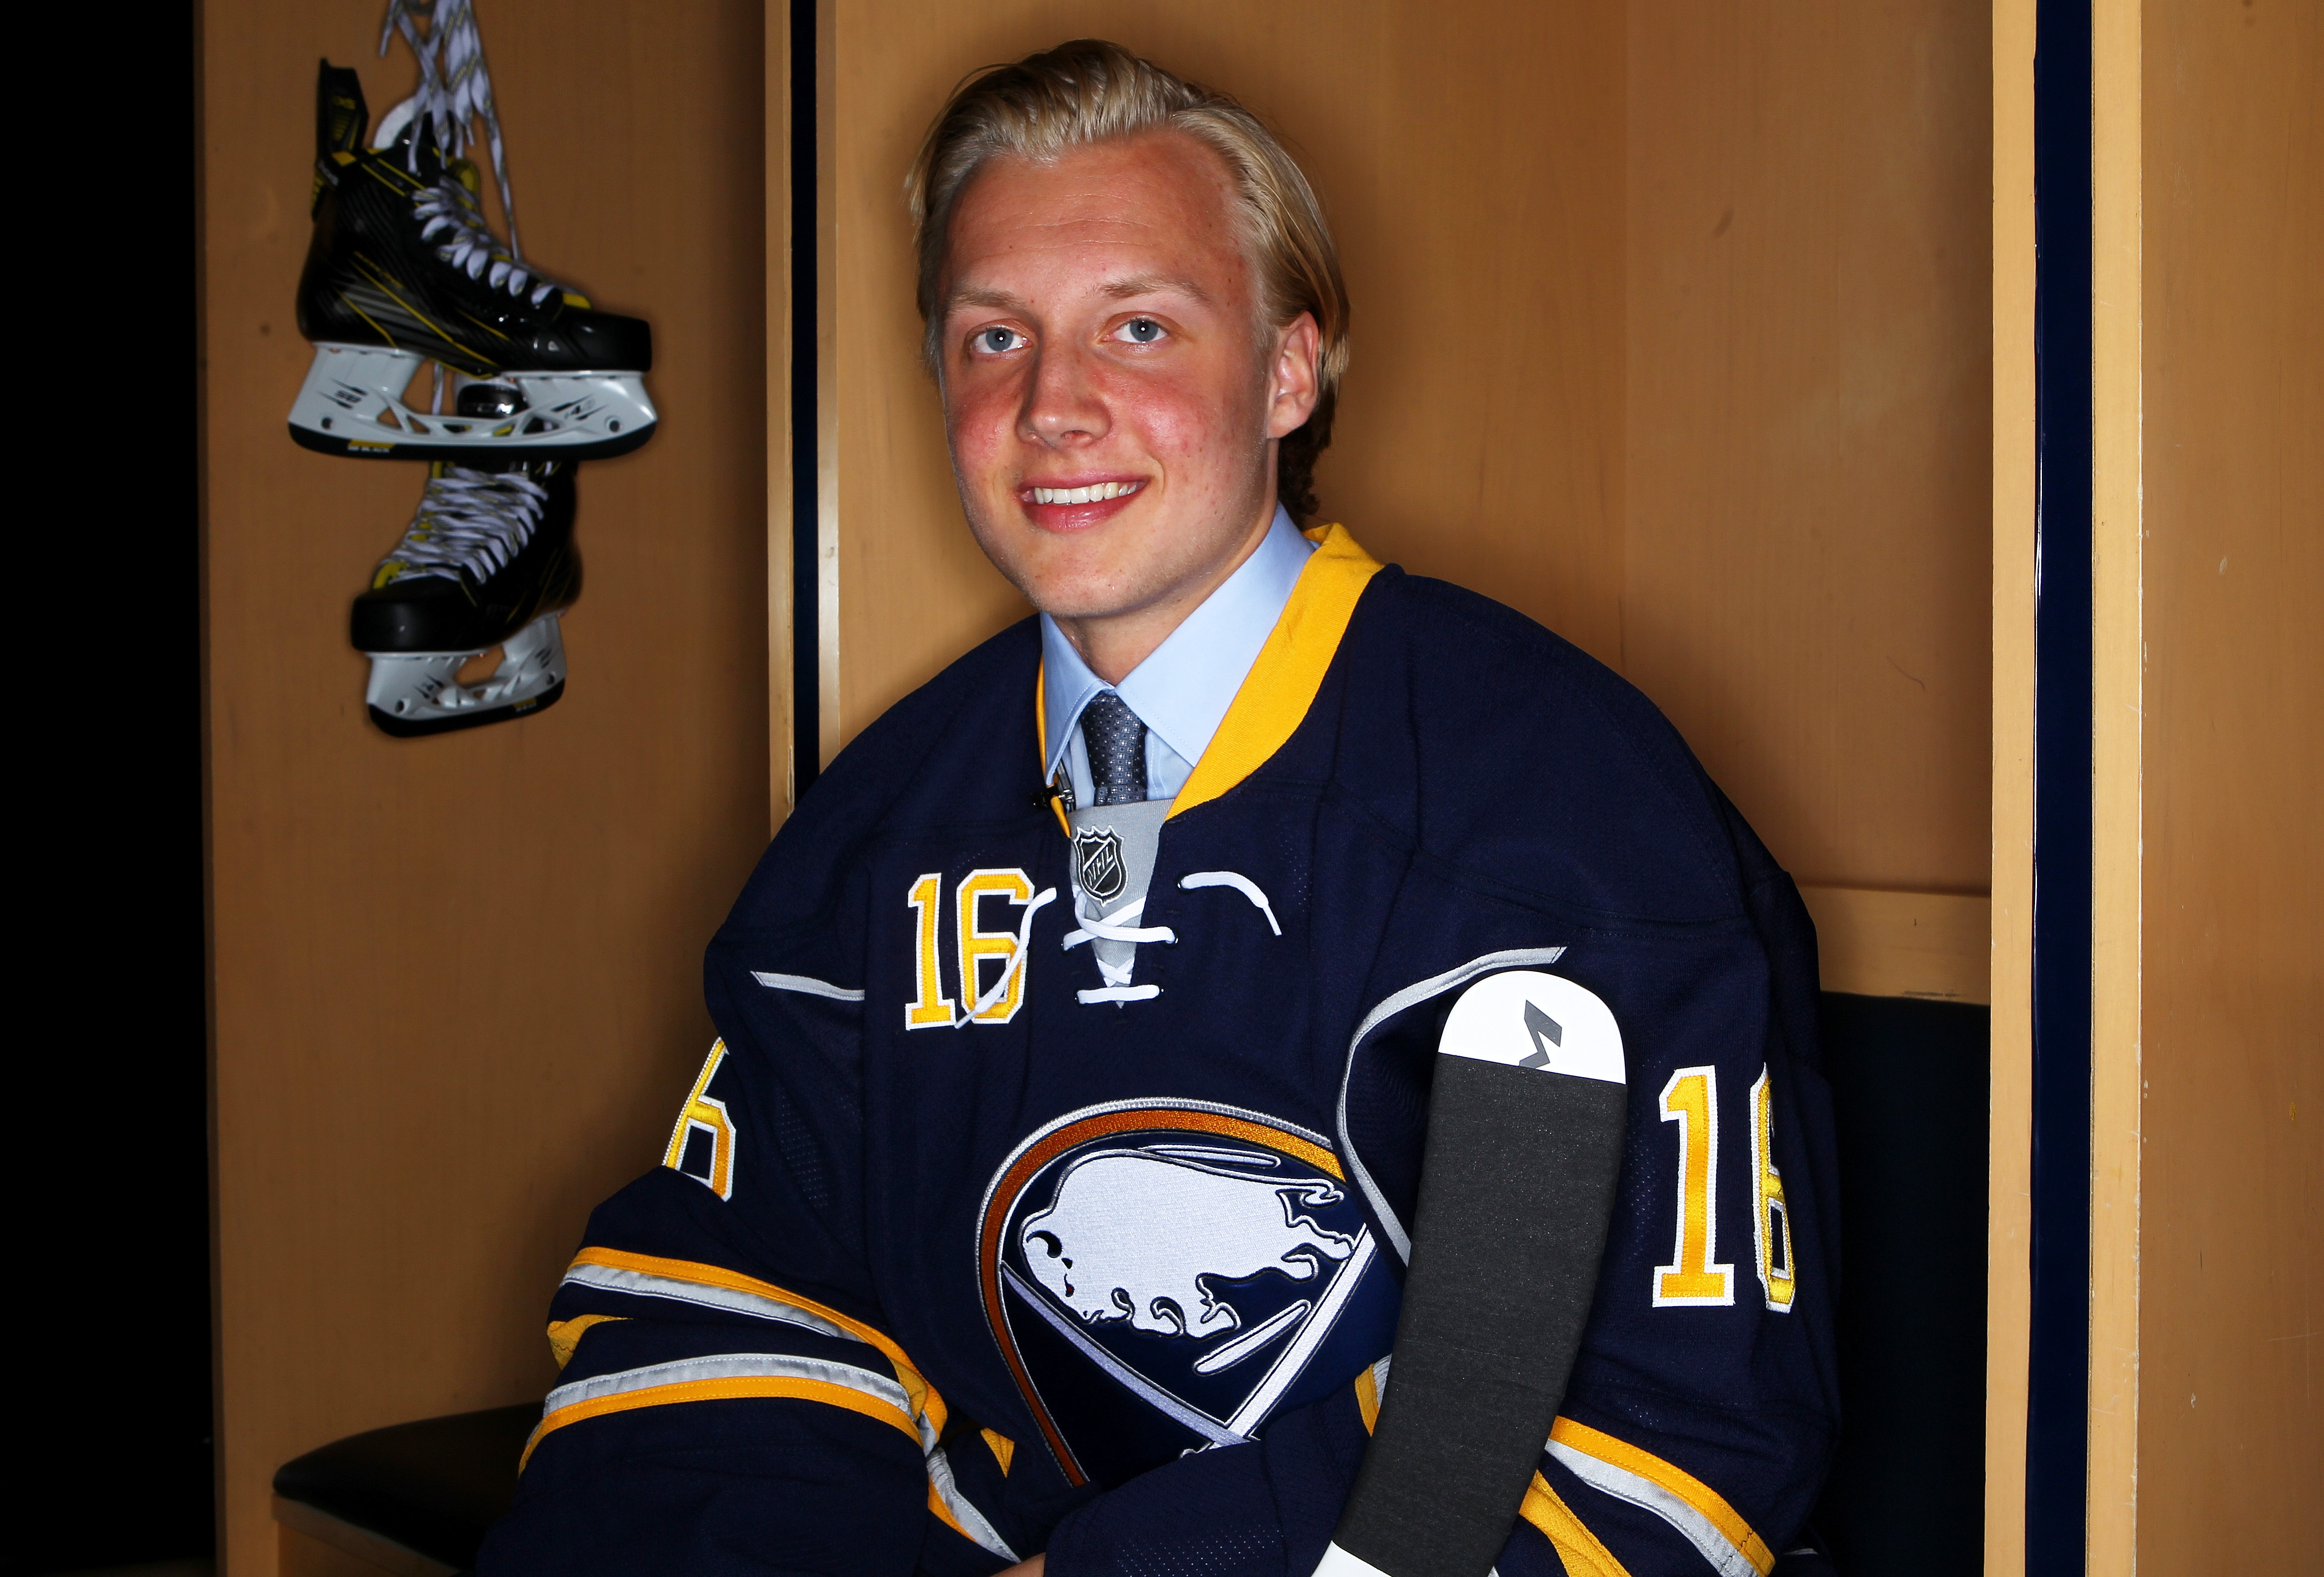 After competing against older men in the AHL, Alexander Nylander will skate against guys his own age. (Getty Images)